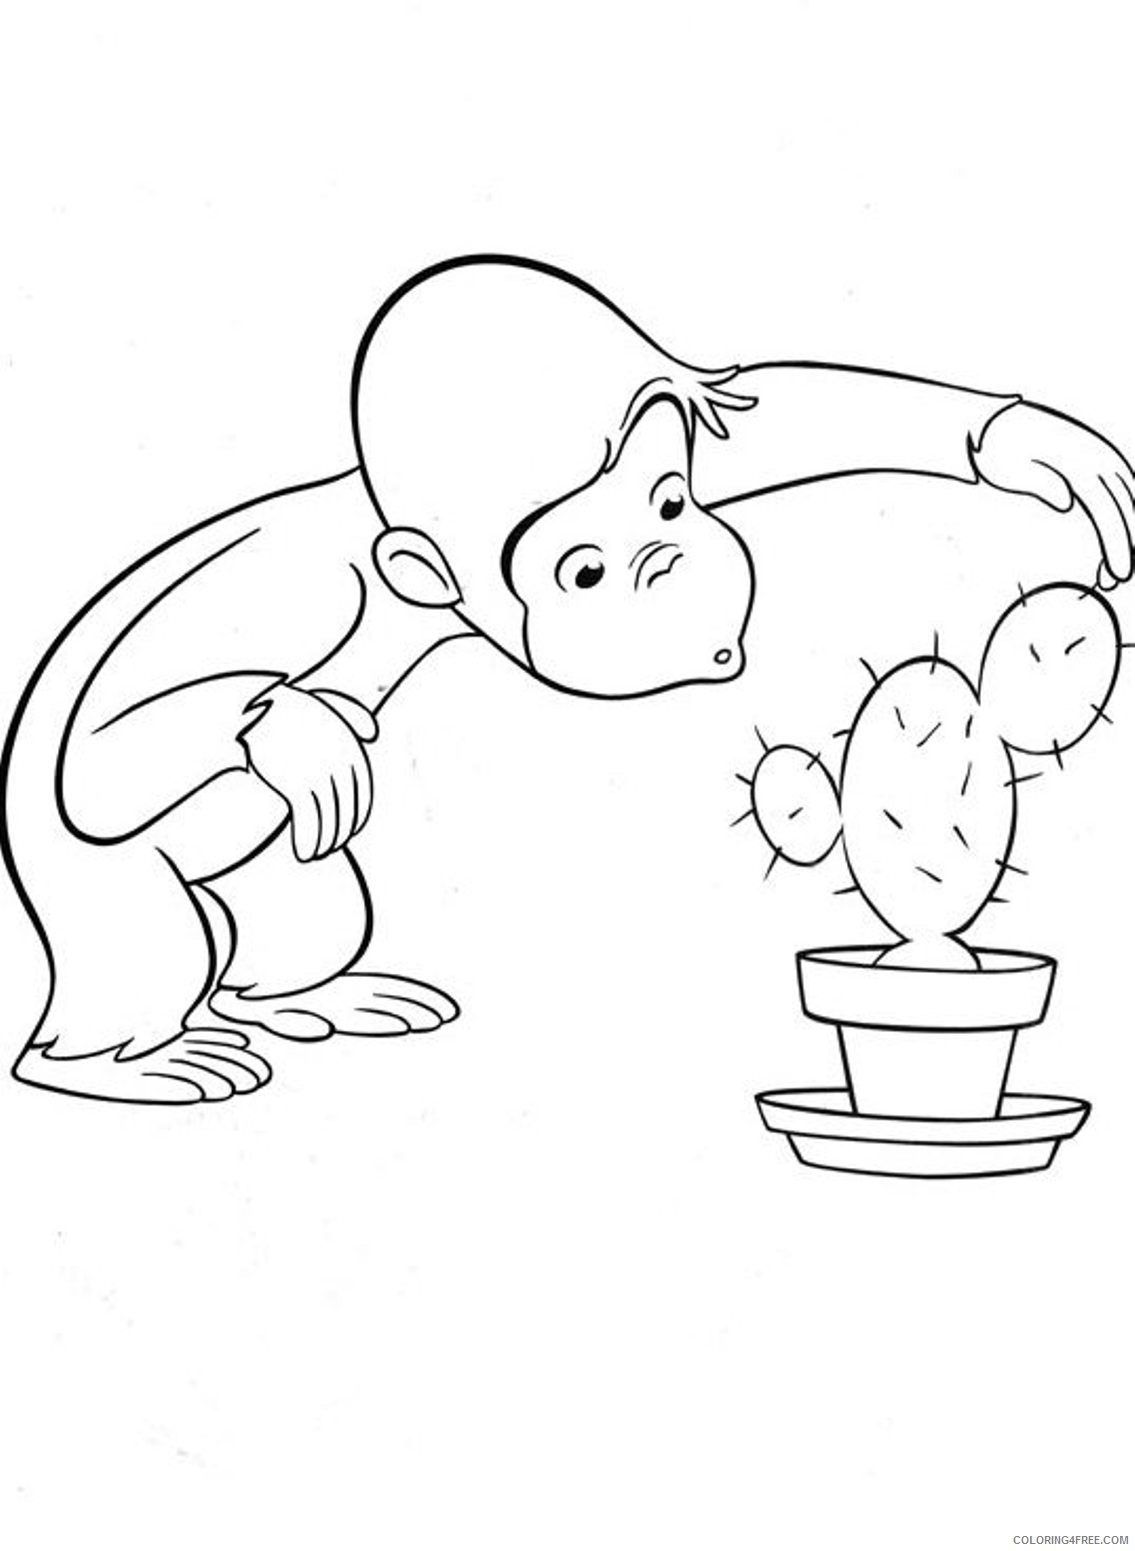 curious george coloring pages touching cactus Coloring4free